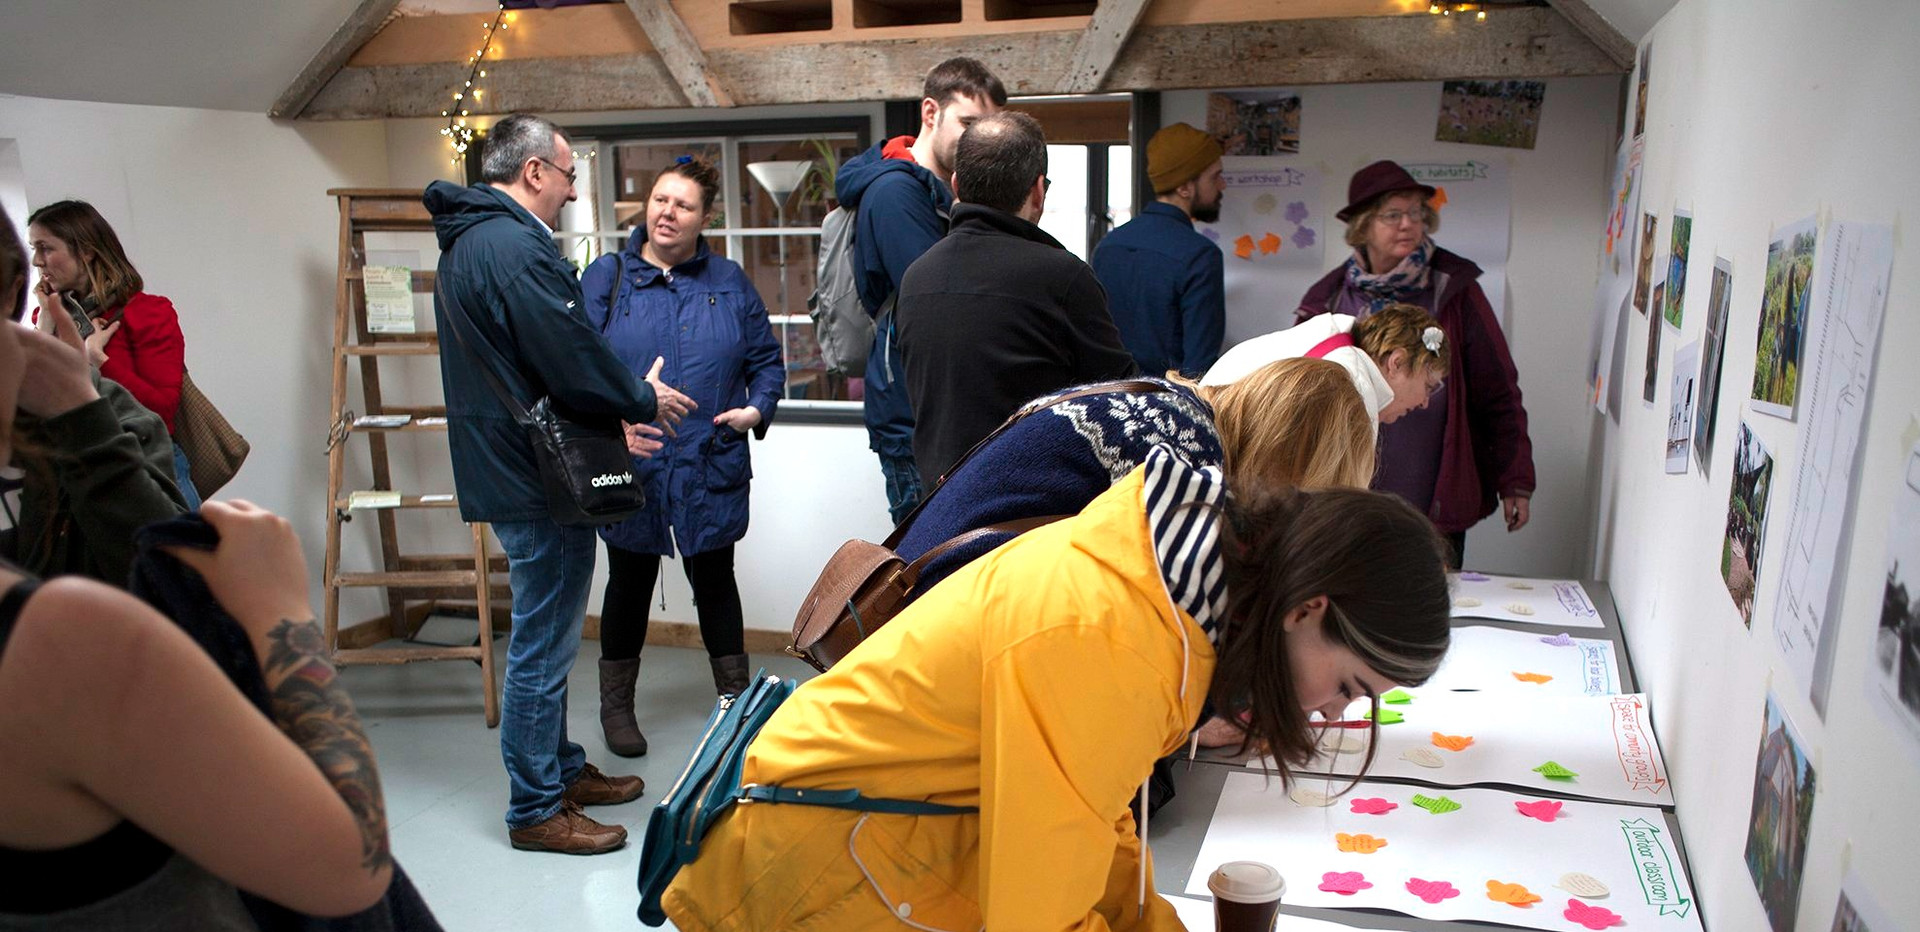 In January 2018 we held community consultation events in Splott and Adamsdown to find out how our community would use the land.   An amazing 165 people responded to the consultation in total!